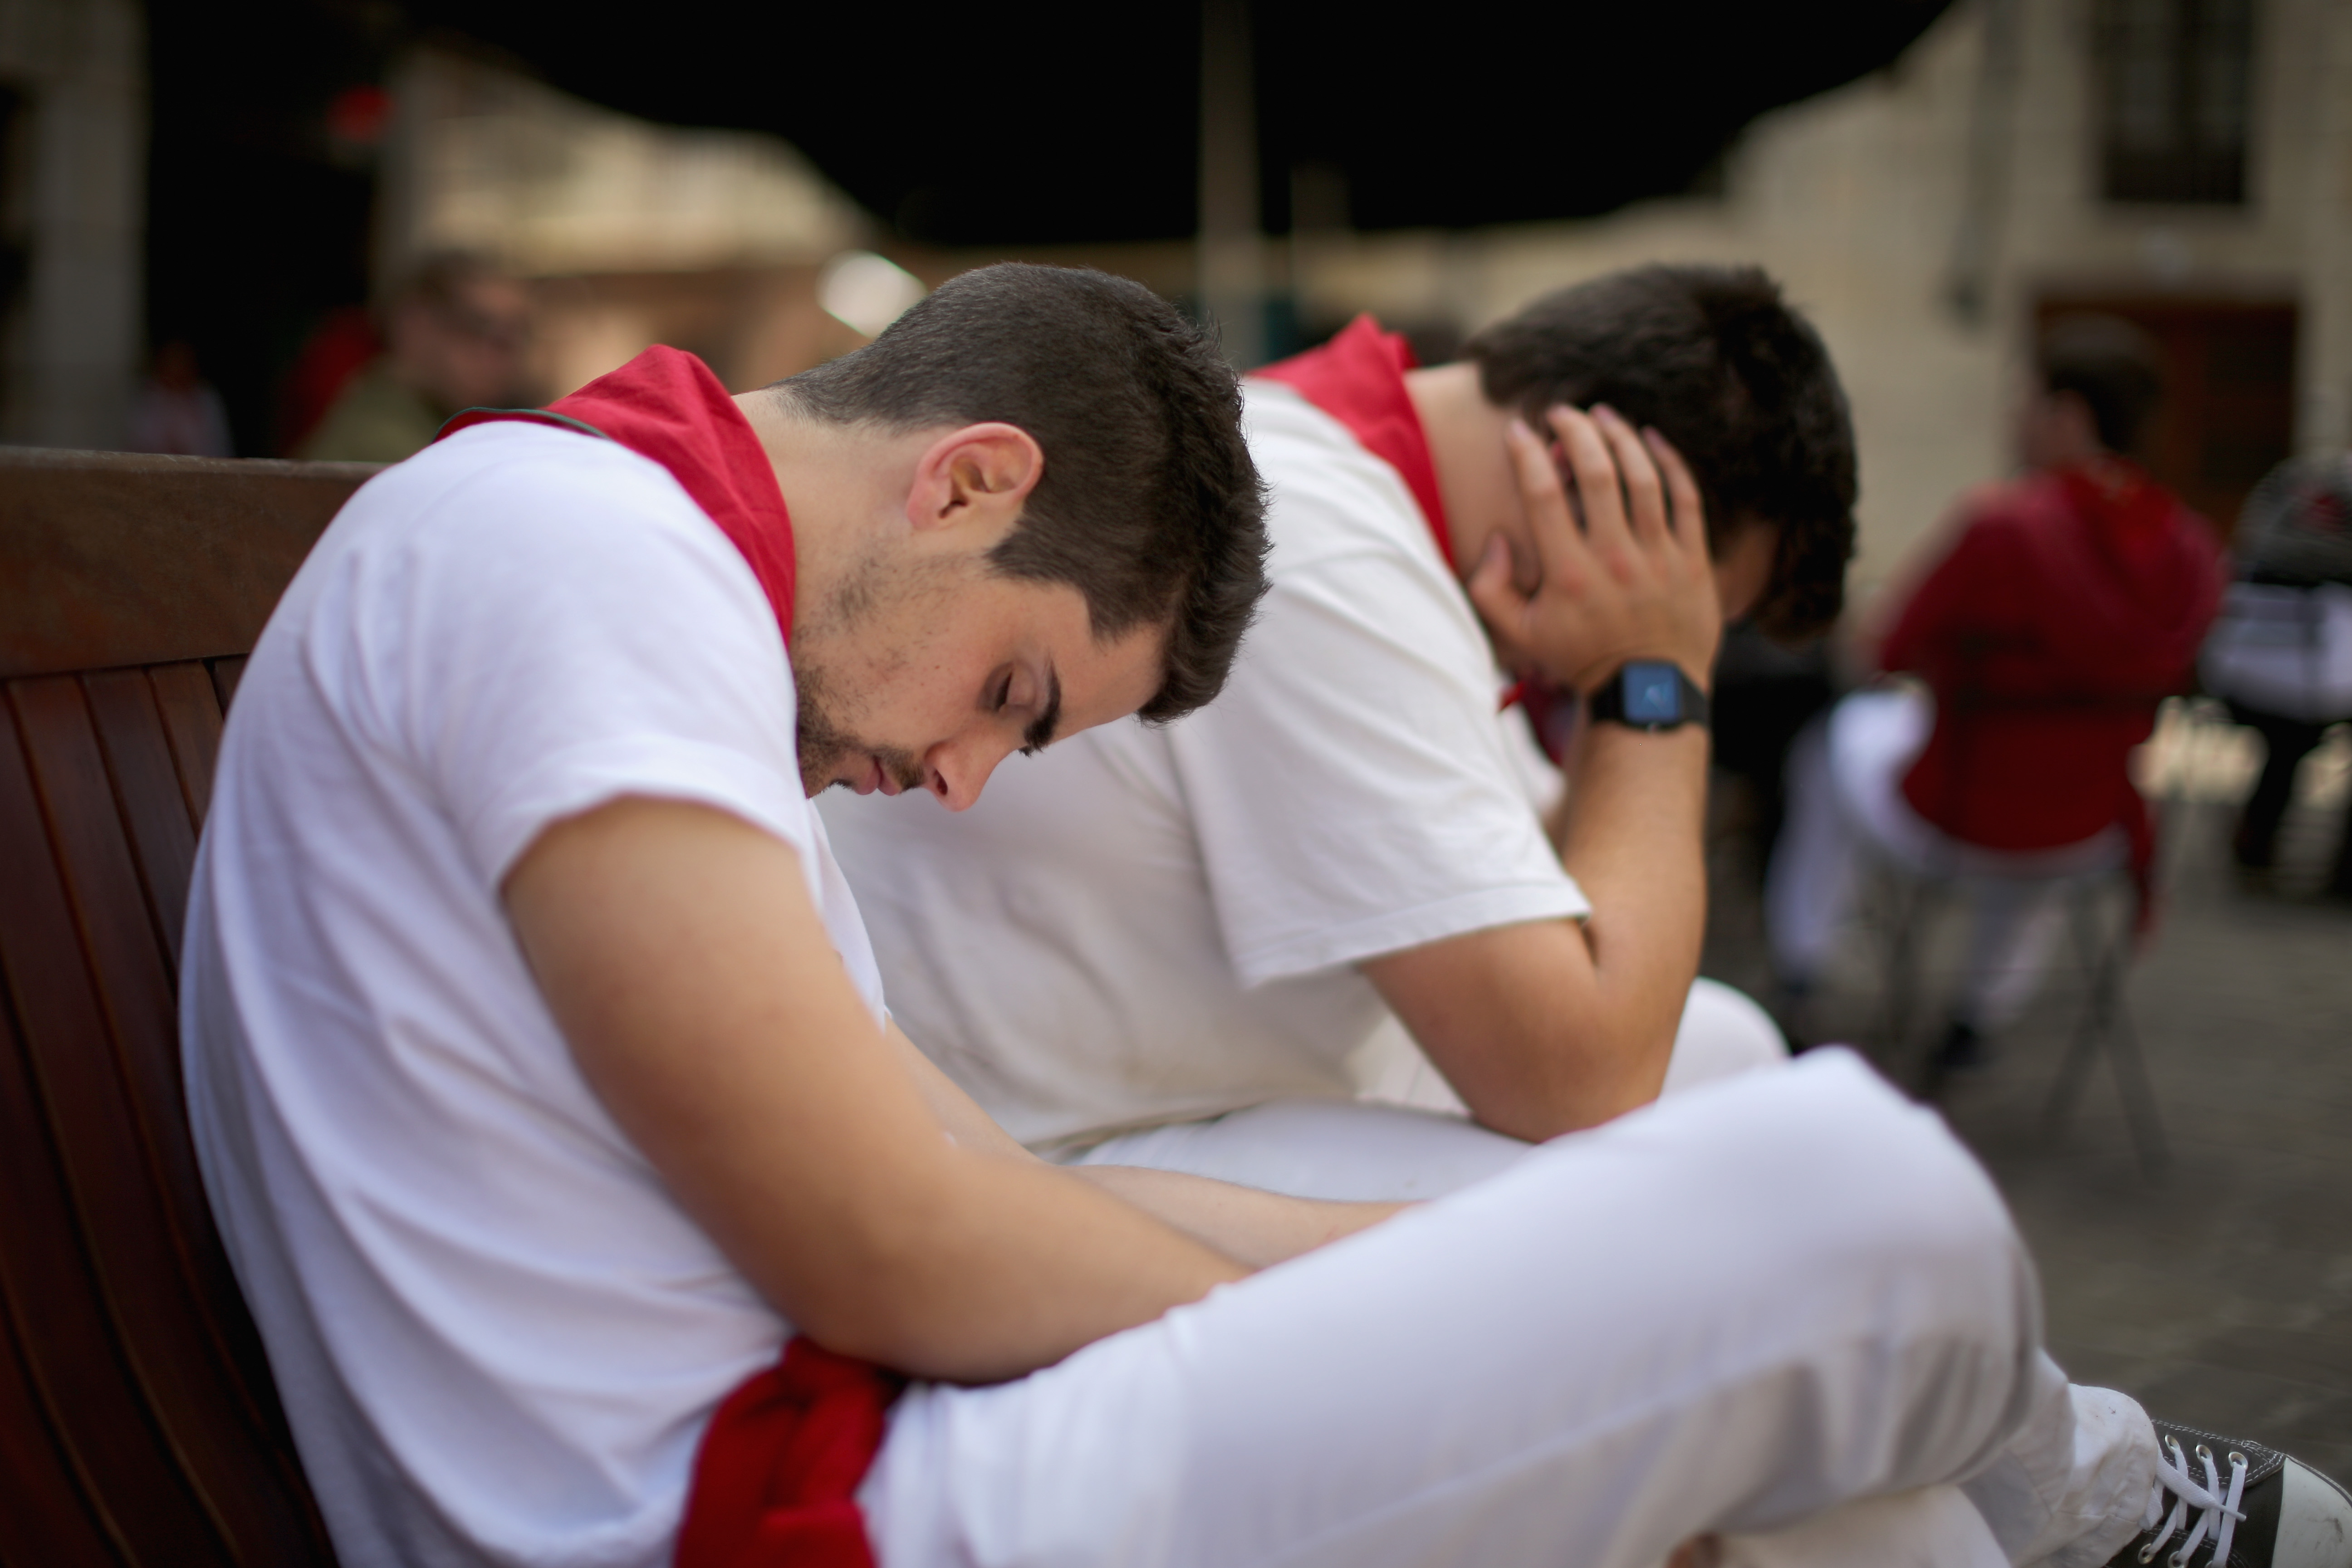 Revellers take an afternoon siesta sleeping off the effects of partying during the fourth day of the San Fermin Running Of The Bulls festival, on July 9, 2014 in Pamplona, Spain.